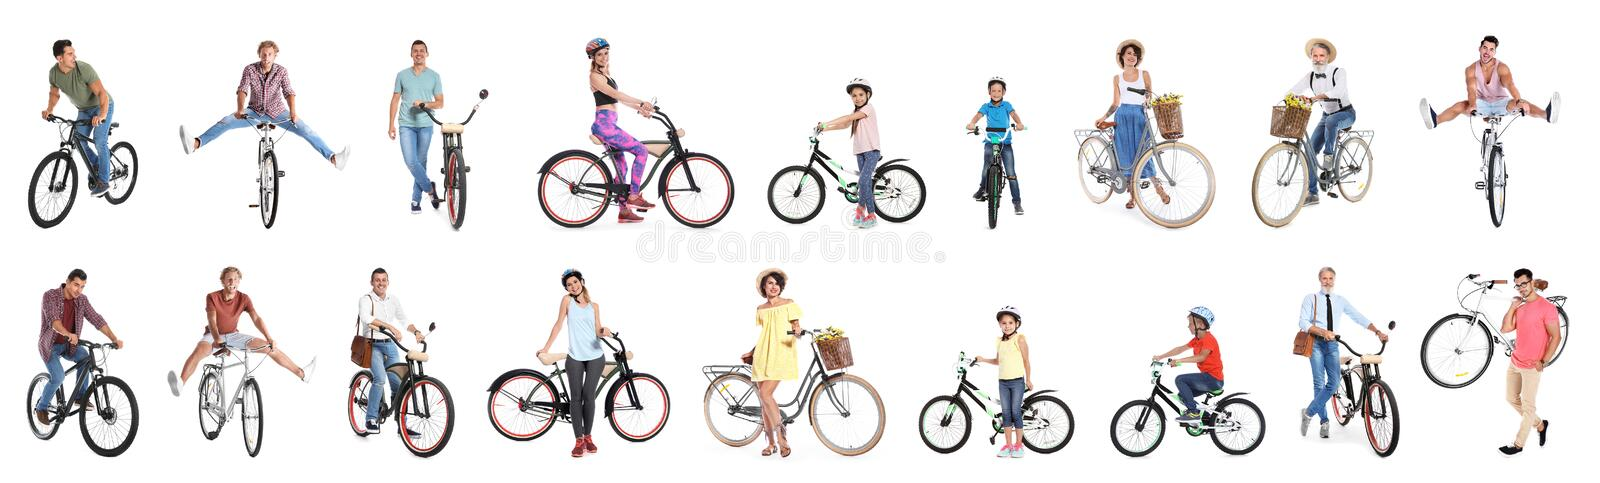 Collage of people with bicycles on background stock photo